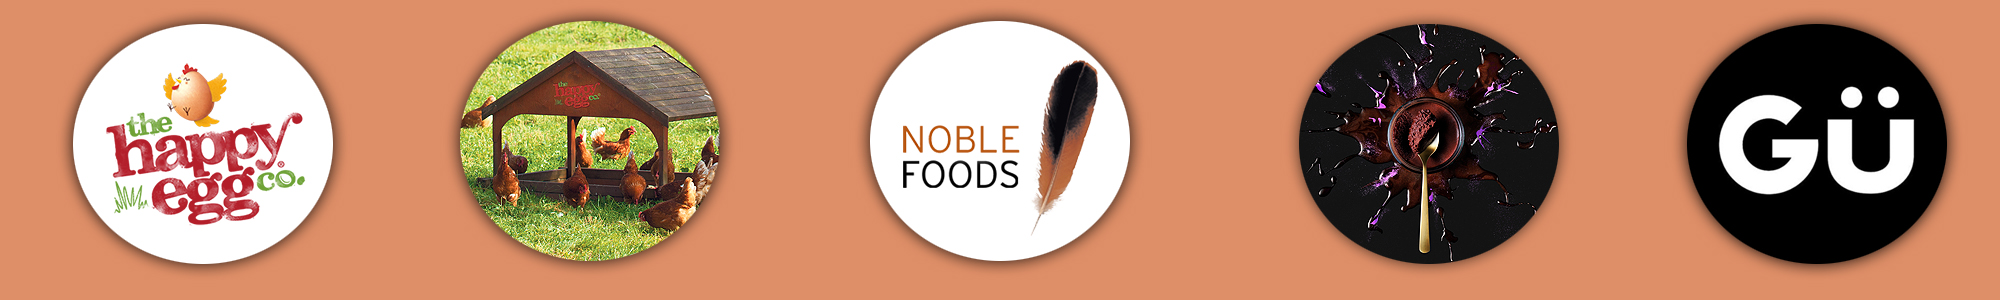 Noble Foods c/o Veritas